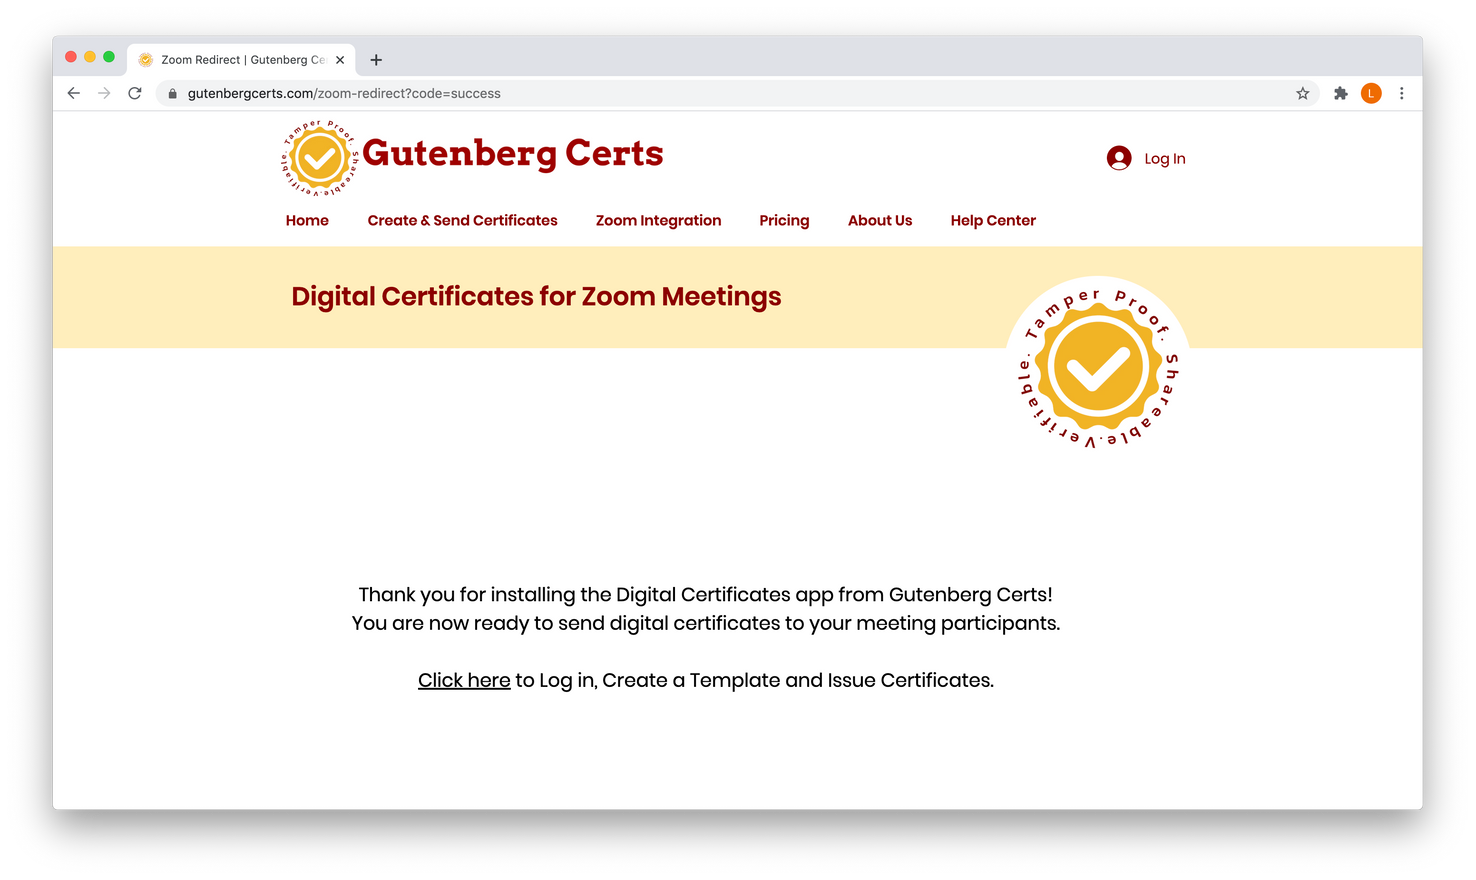 Now, you will be directed to create an account in Gutenberg Certs.